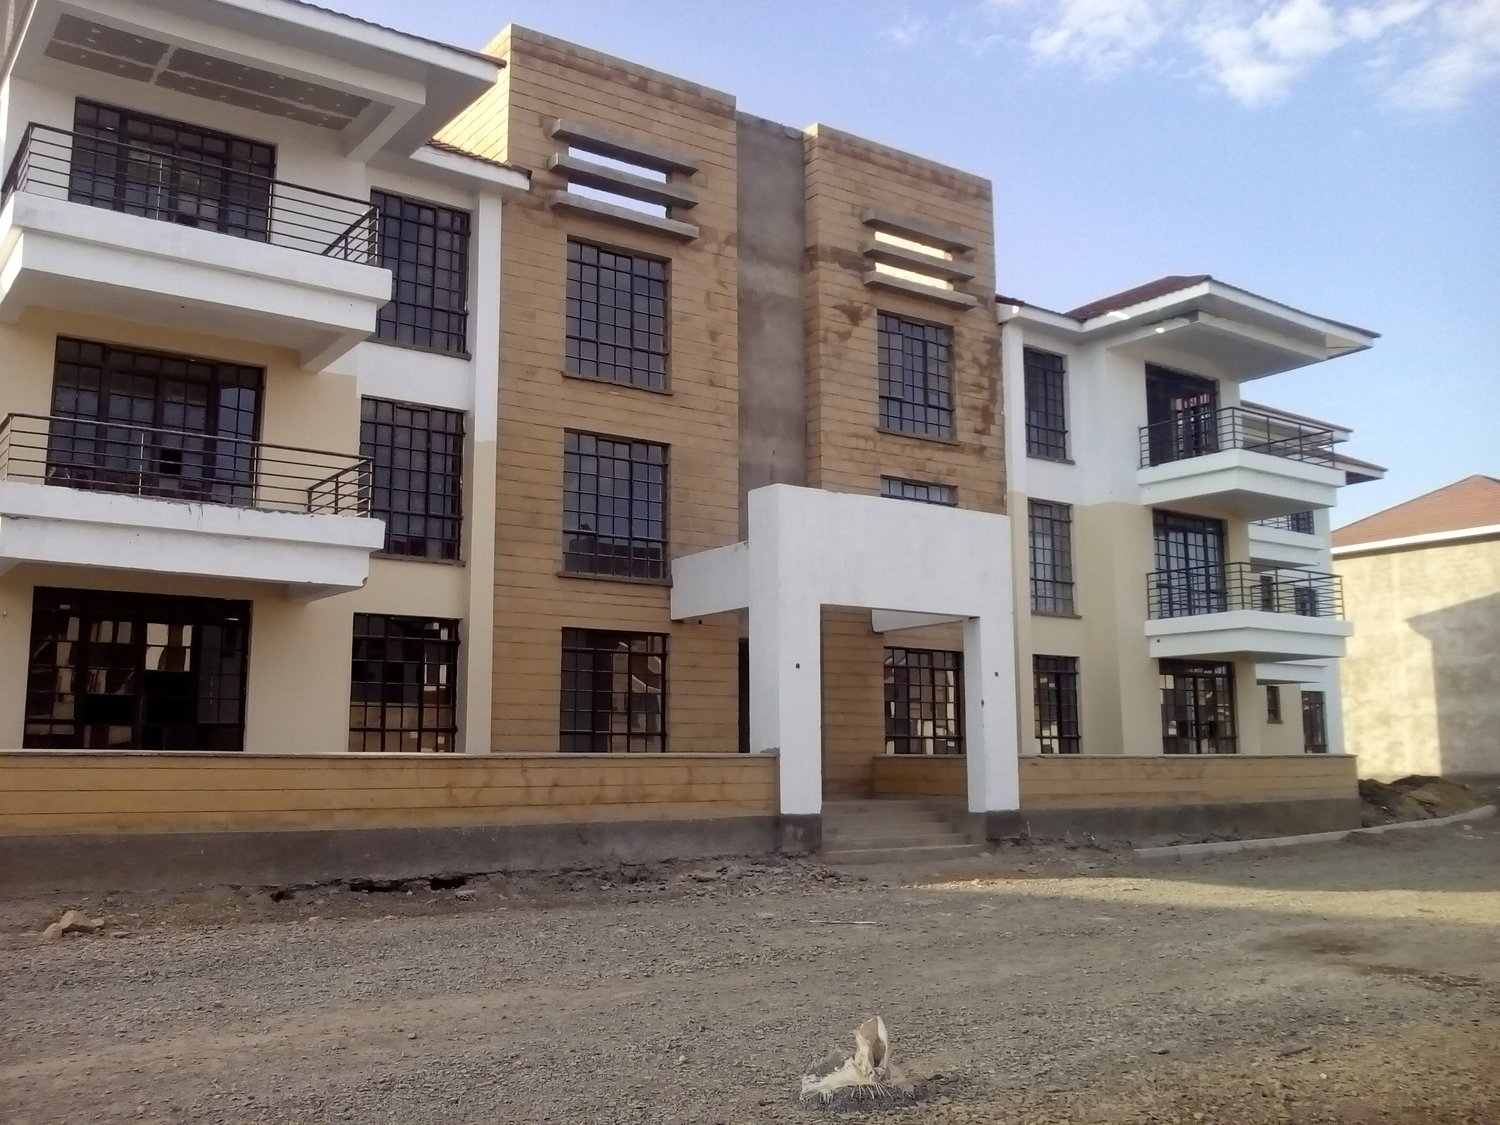 How NPLs, over supply, rate caps are affecting Kenya's property market